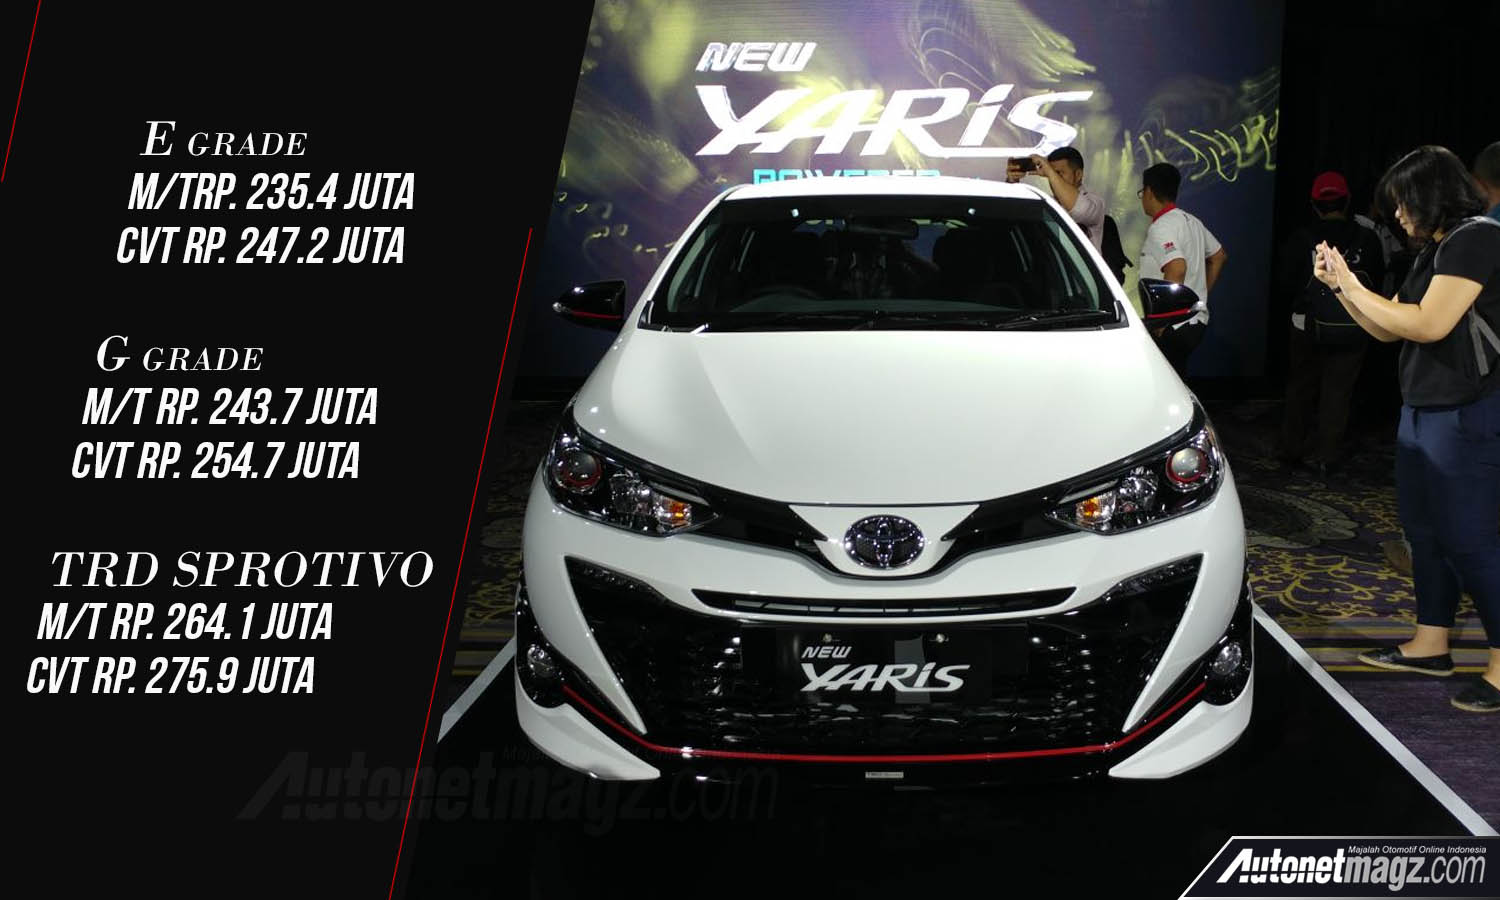 toyota yaris trd sportivo 2018 indonesia 2008 parts harga facelift  autonetmagz review